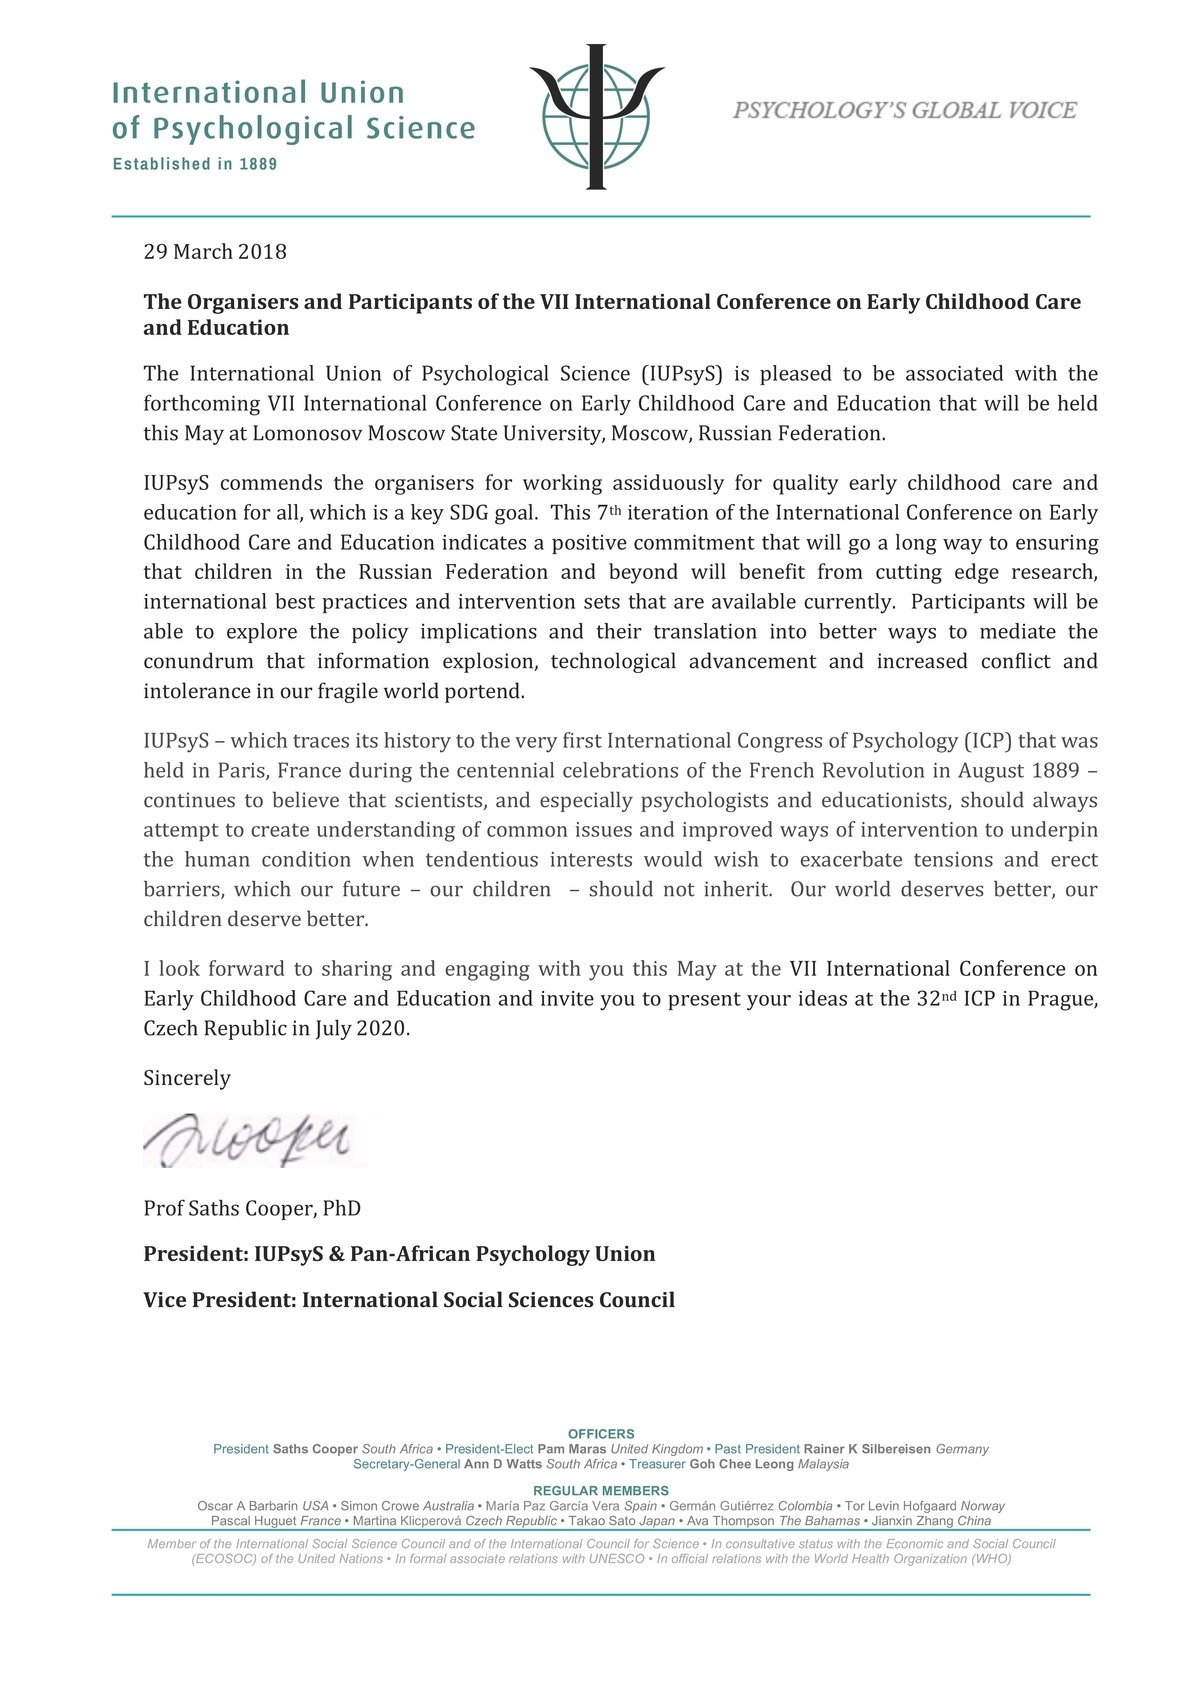 IUPsyS Letter 29 March 2018.jpg